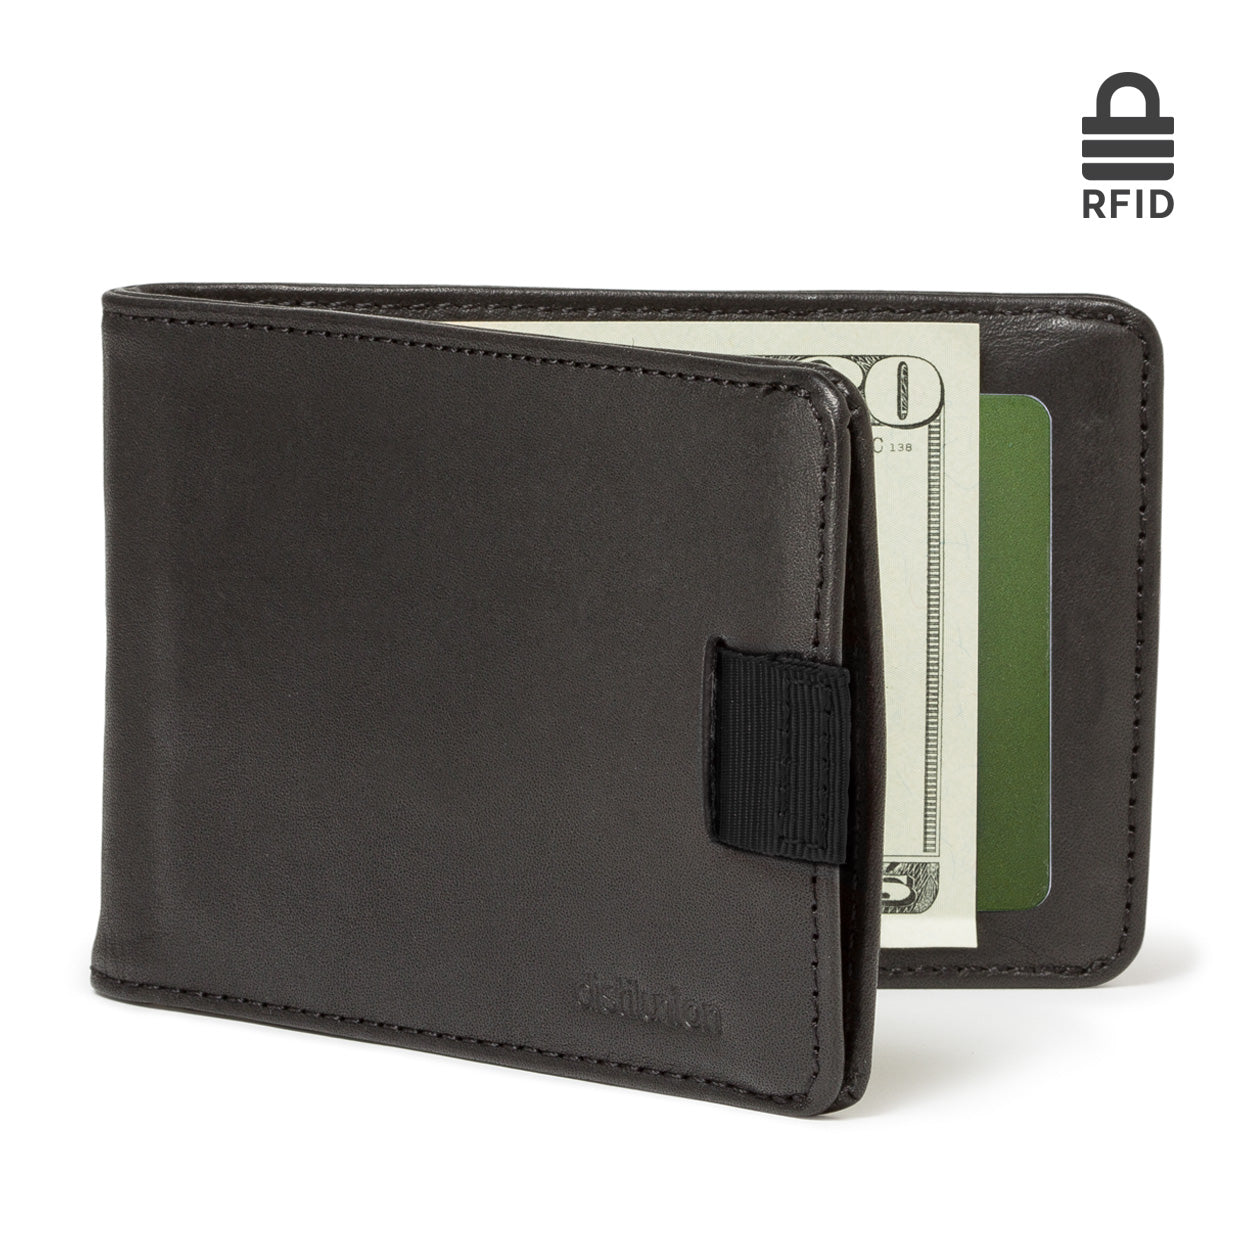 Wally Bifold leather wallet with RFID-blocking